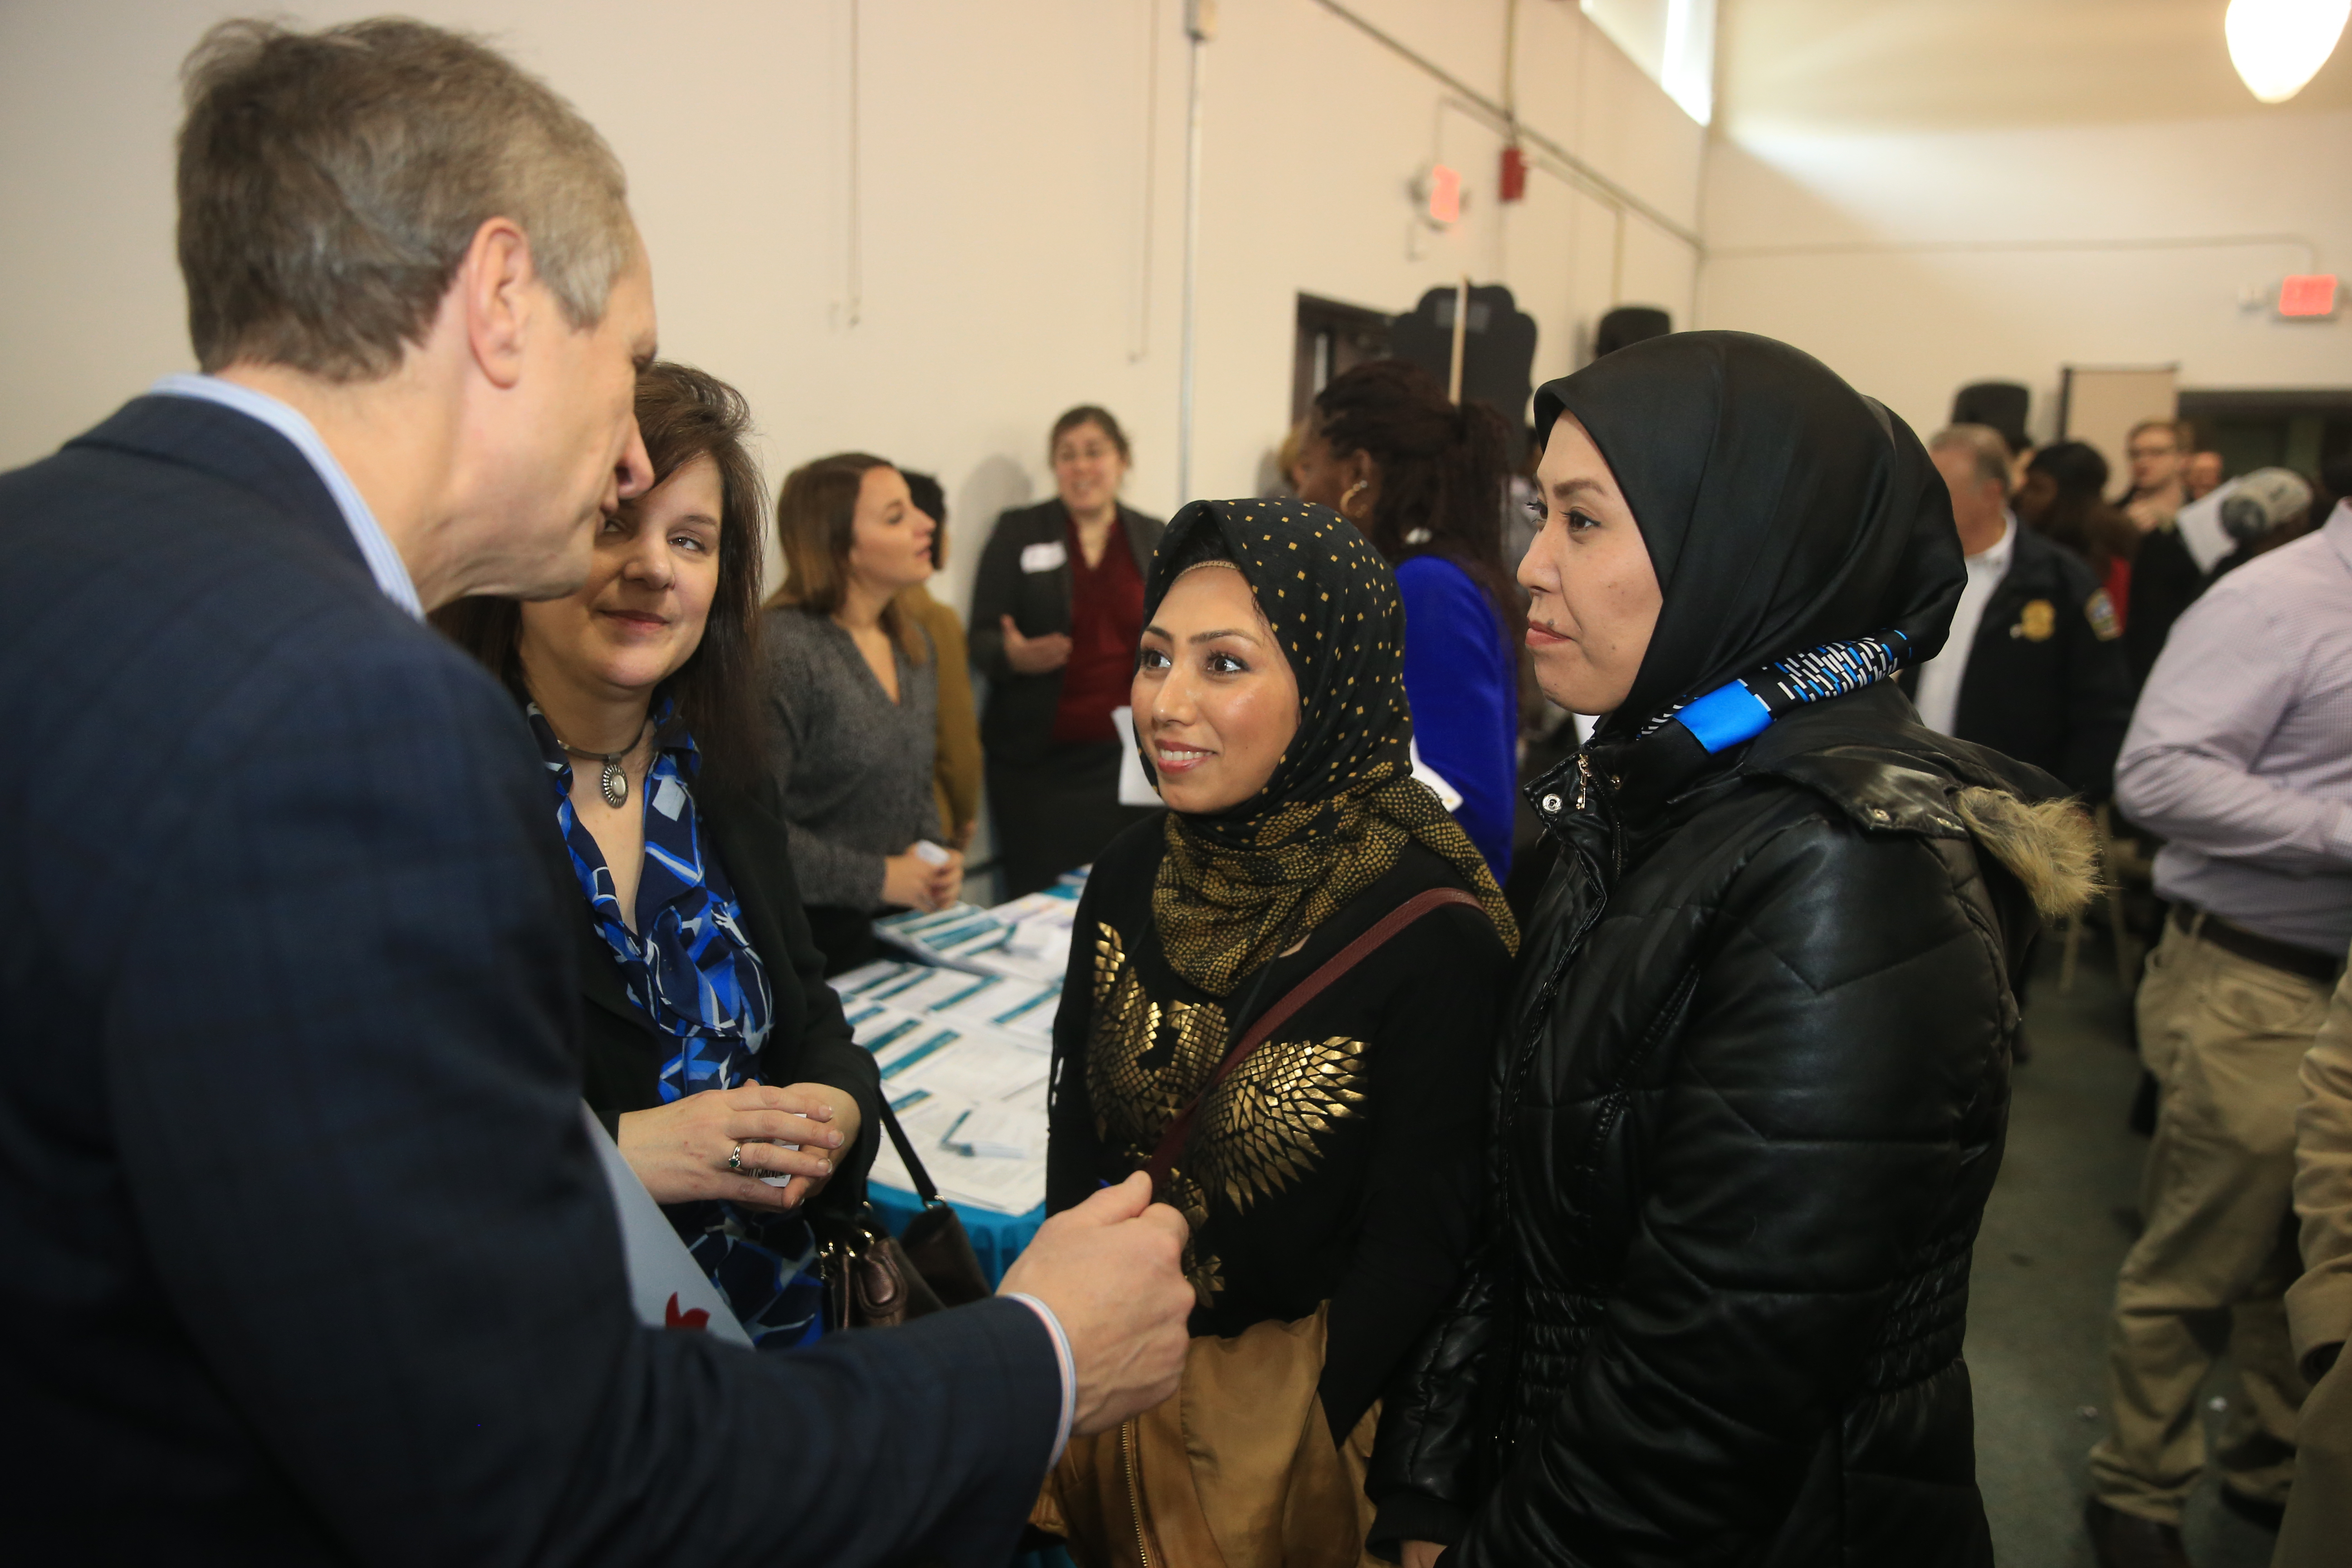 New York State Assemblyman Sean Ryan, left, talks with Lisa Strand of Legal Aide, Yelda Natiq a translator, and Robobeh Ohorbanzedah a Afghan refugee as representatives from several legal service providers, resettlement agencies, government agencies and nonprofit organizations will be present to assist with issues, provide limited representation and address concerns participants of the ÔKnow Your RightsÕ Open House for local immigrants and refugees, at  Buffalo, N.Y. on  Saturday,  Feb. 4, 2017.  (John Hickey/Buffalo News)